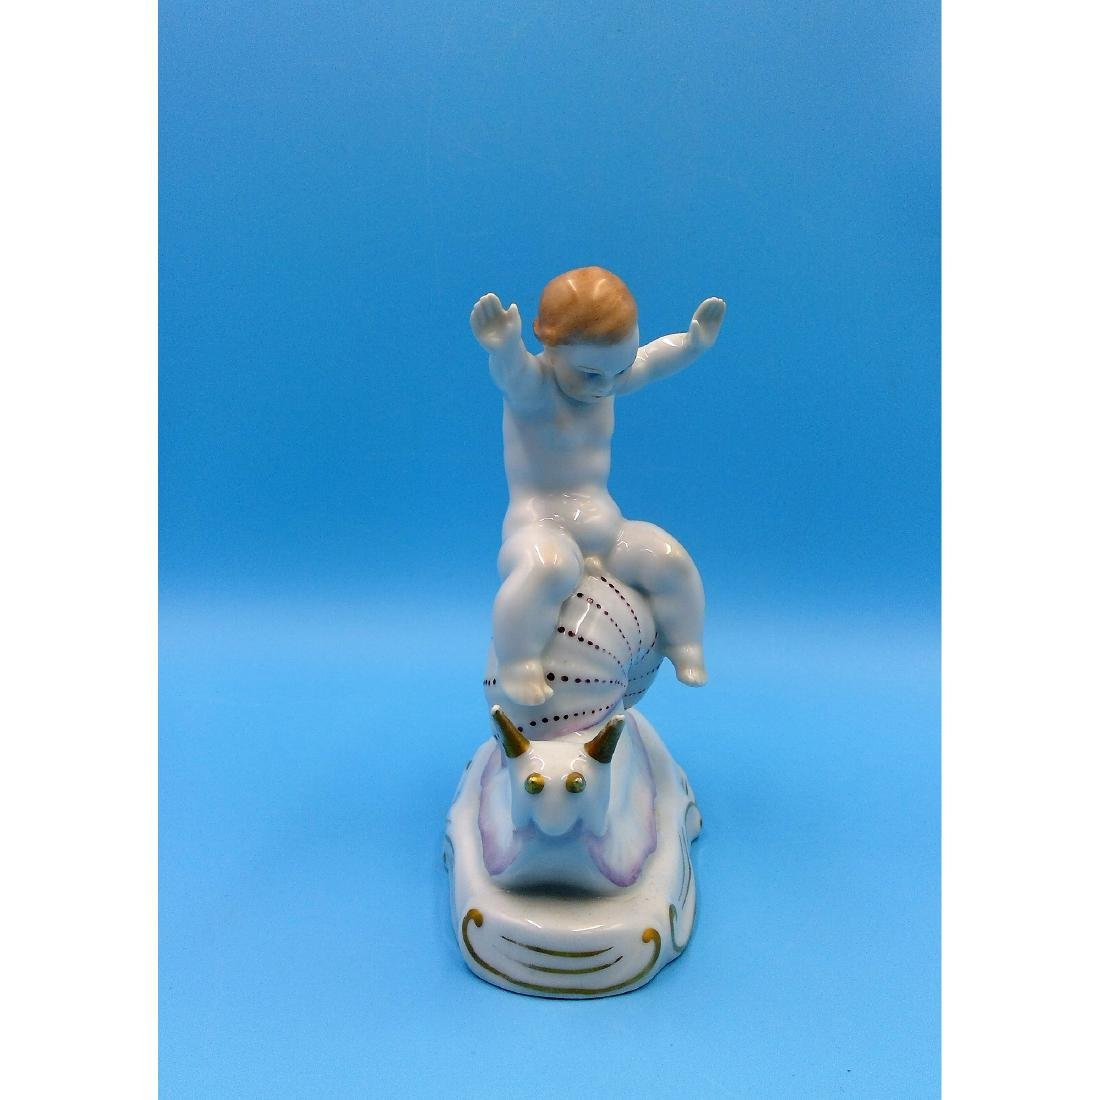 HEREND HUNGARIAN PORCELAIN FIGURINE BOY - 4